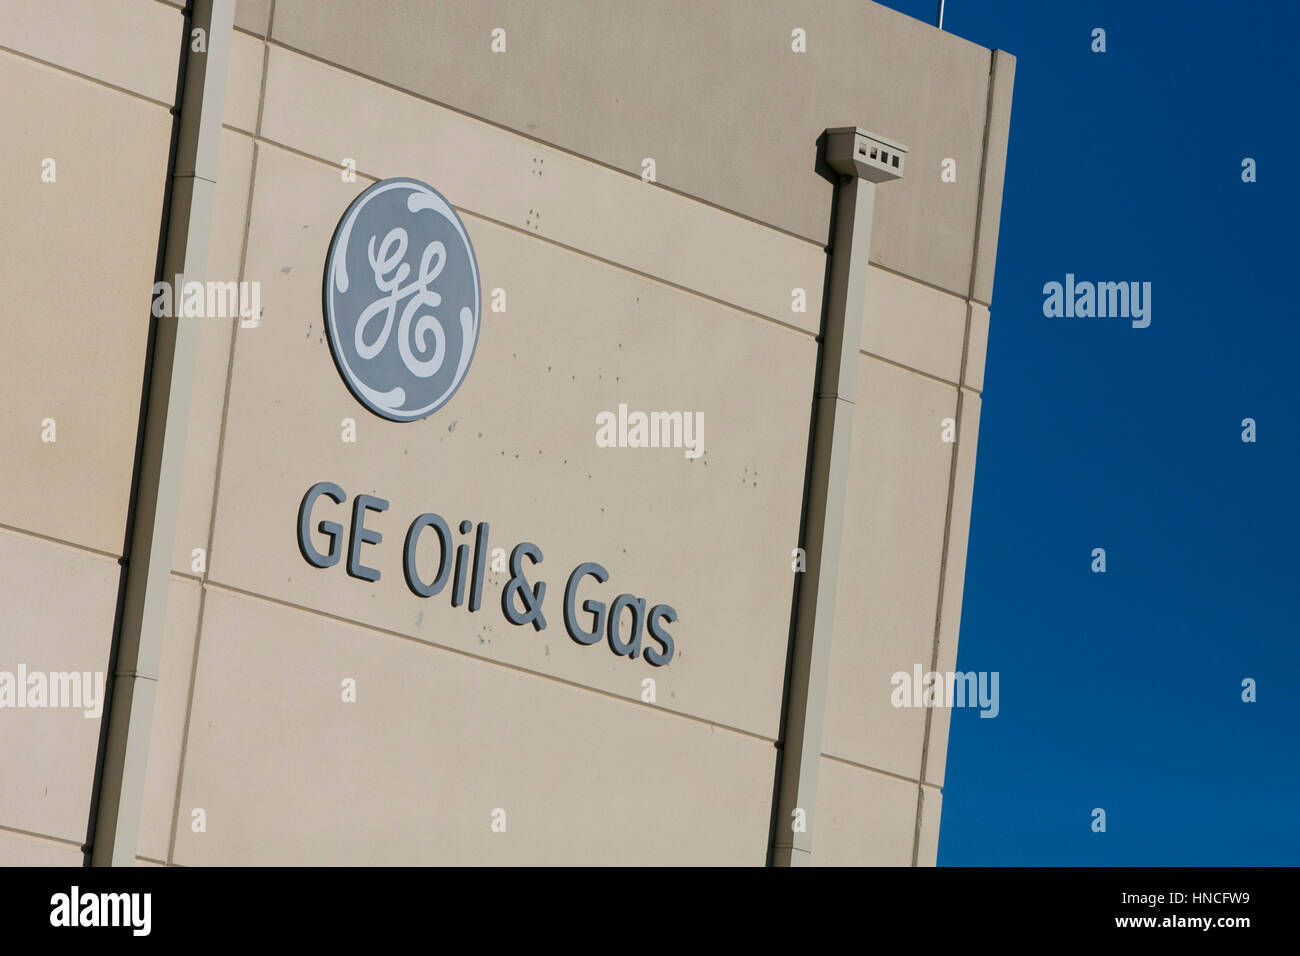 A logo sign outside of a facility occupied by GE Oil & Gas